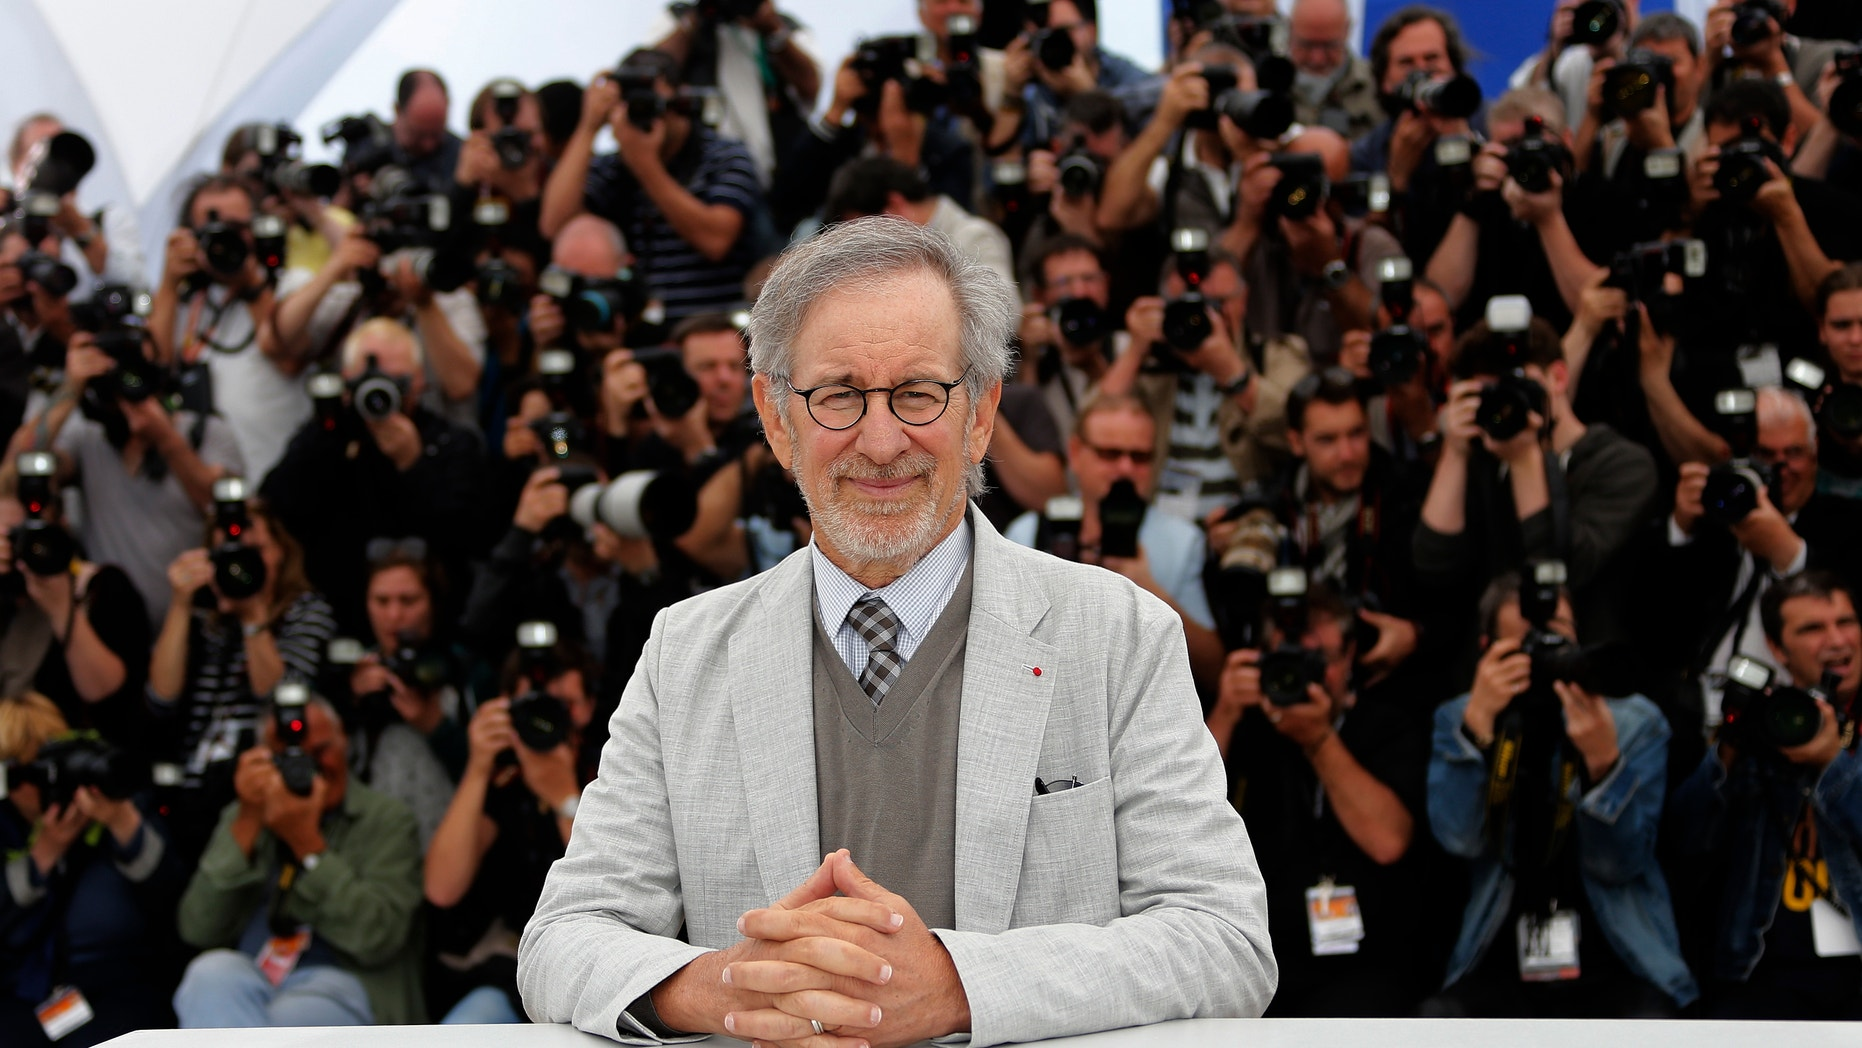 Director Steven Spielberg, jury president of the 66th Cannes Film Festival, poses during a photocall before the opening of the 66th Cannes Film Festival in Cannes May 15, 2013. The 66th Cannes Film Festival runs from May 15 to May 26.